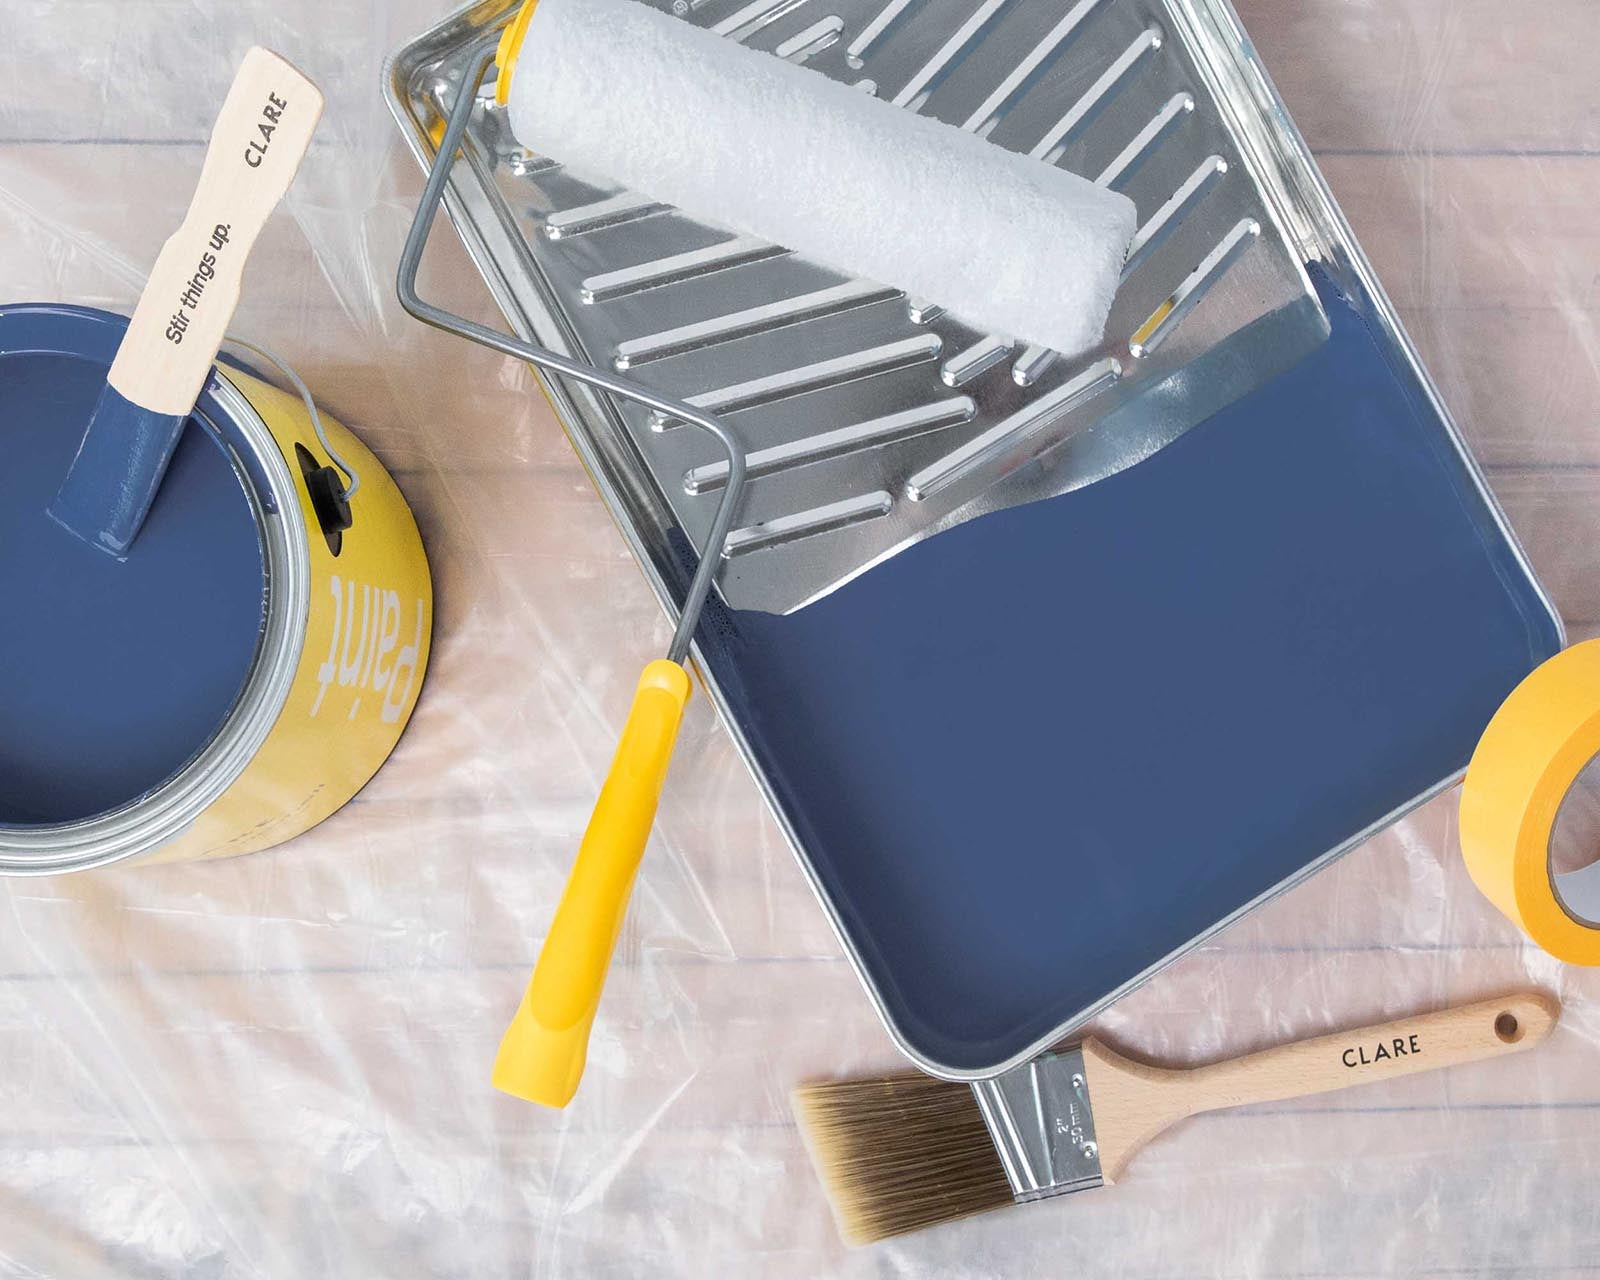 Everything you need to know about paint coverage, including how much a gallon of paint covers, and how to calculate exactly how much paint you need.